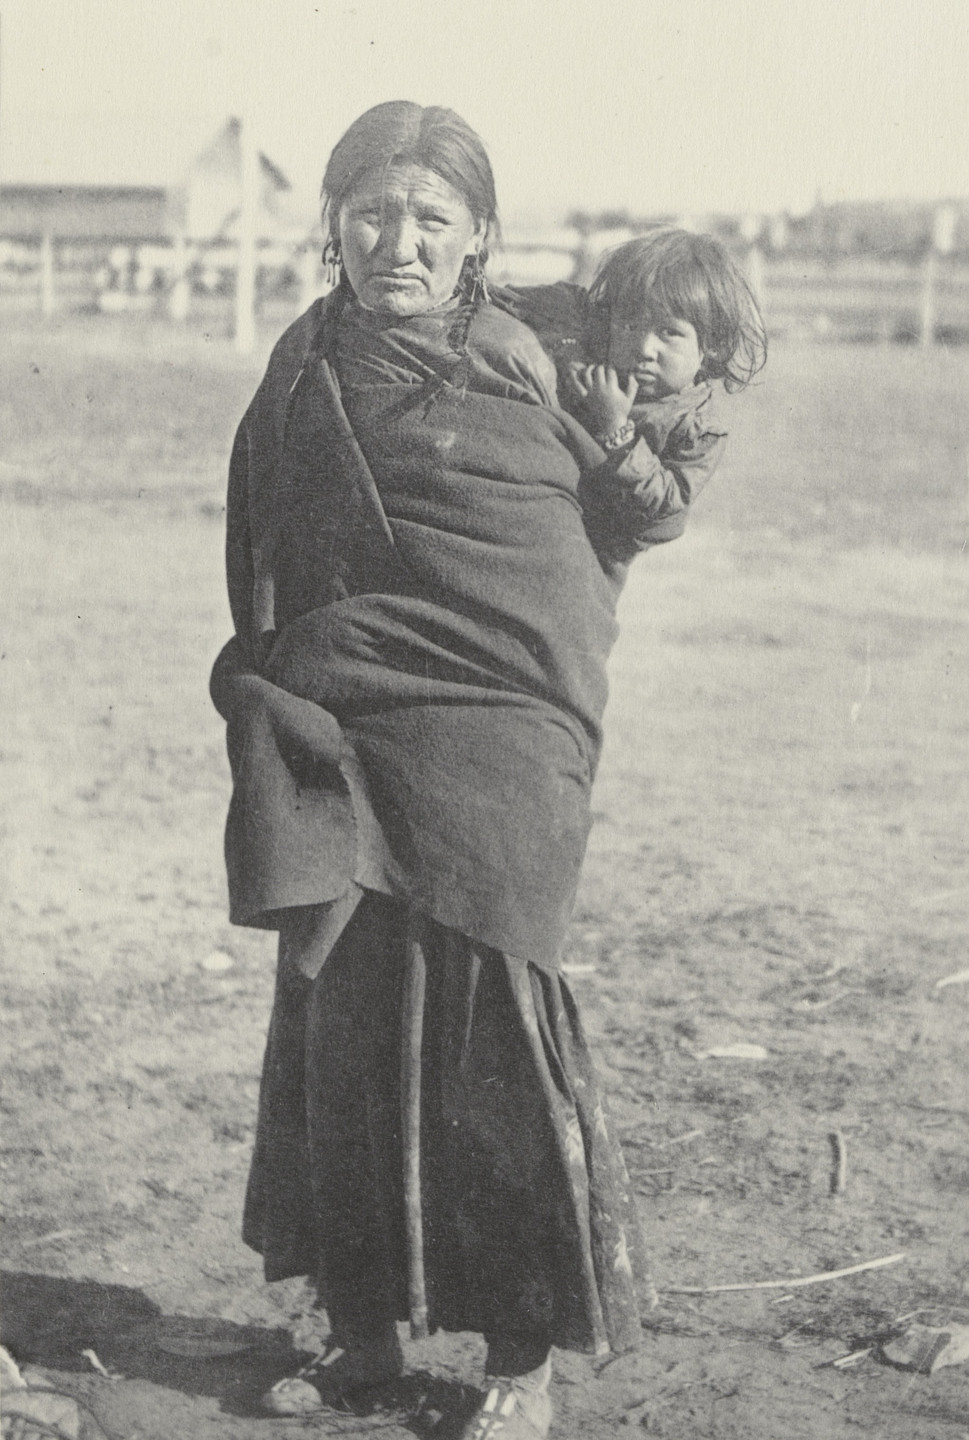 Frances Benjamin Johnston. Without Education. Mrs. Black nail and child. Sioux. 1899-1900